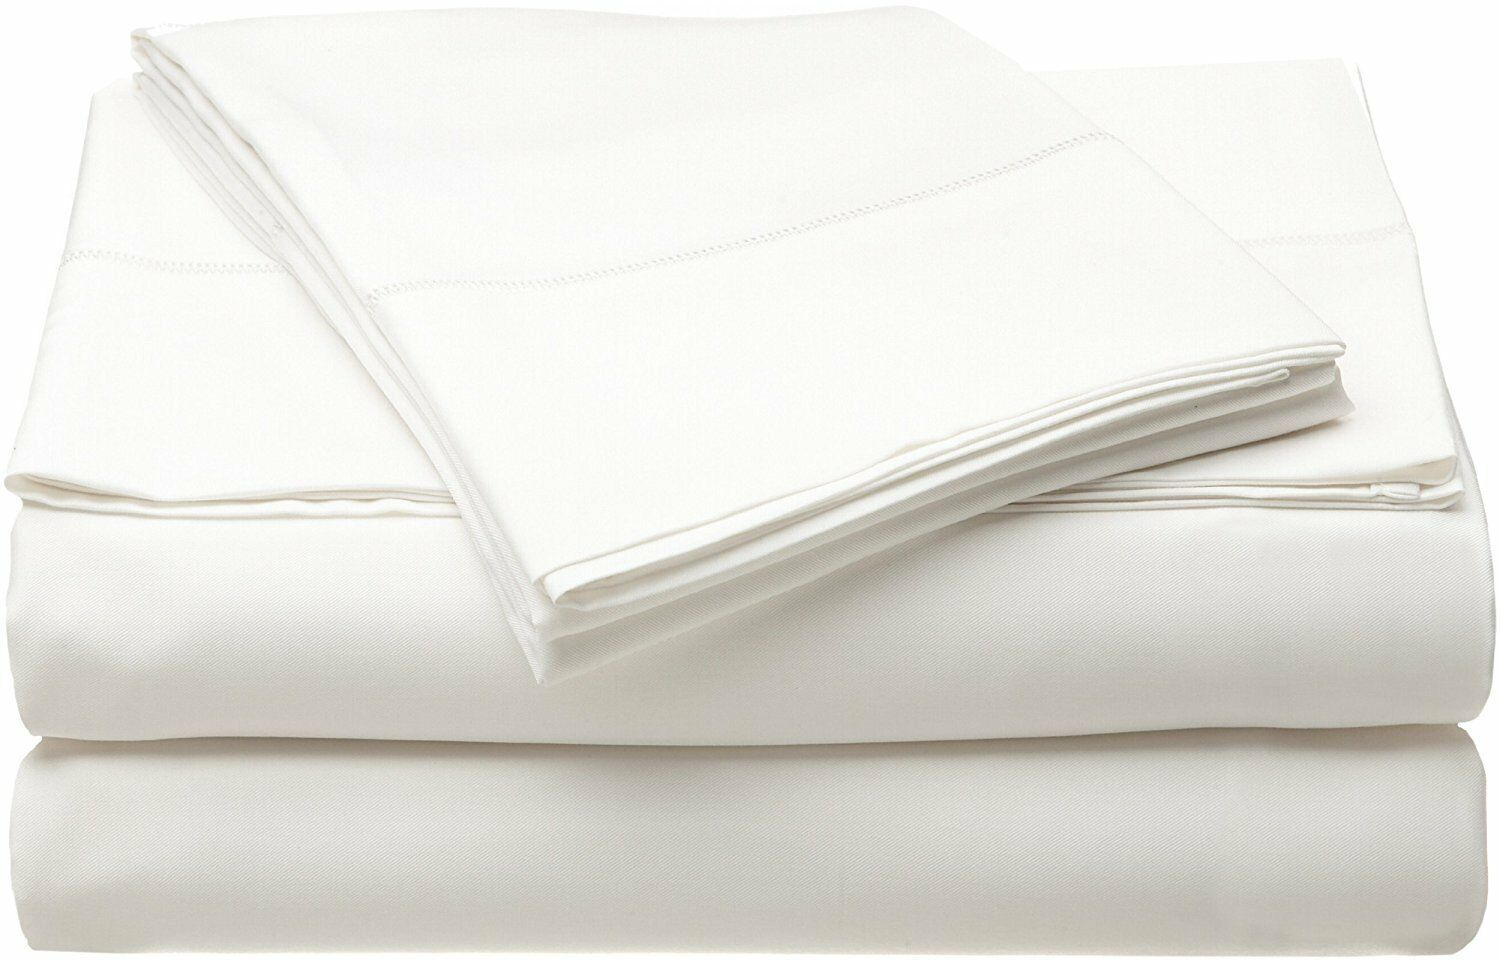 Bamboo Bed Sheet Set Caro Home White 250 Thread Count Luxury Queen King CA King